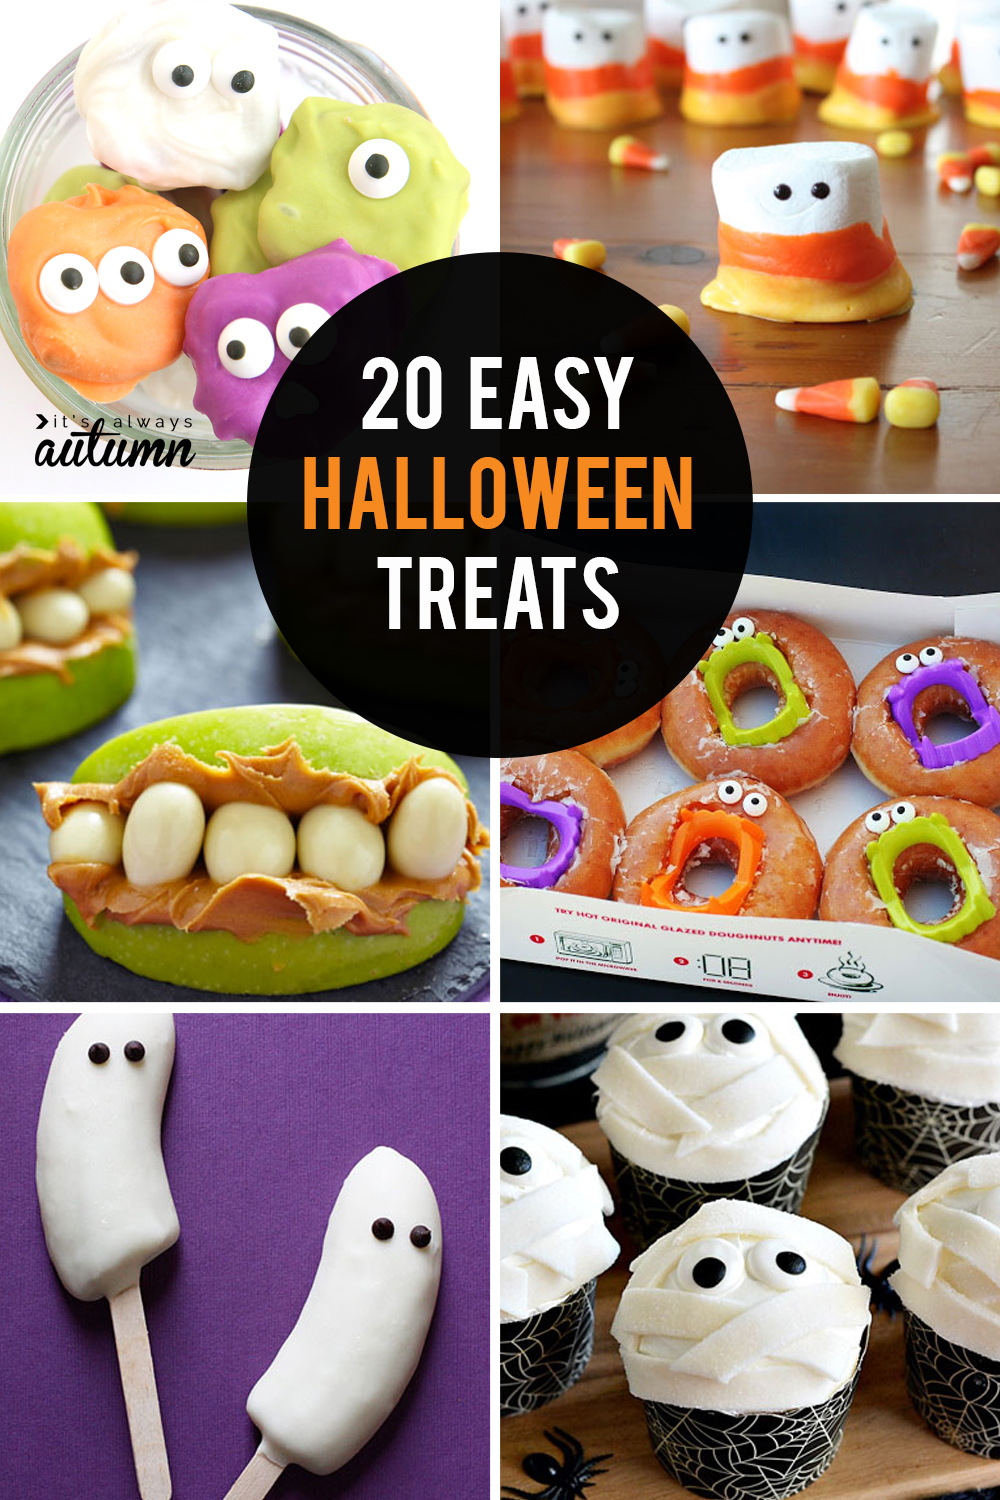 20 Fun Easy Halloween Treats To Make With Your Kids It S Always Autumn